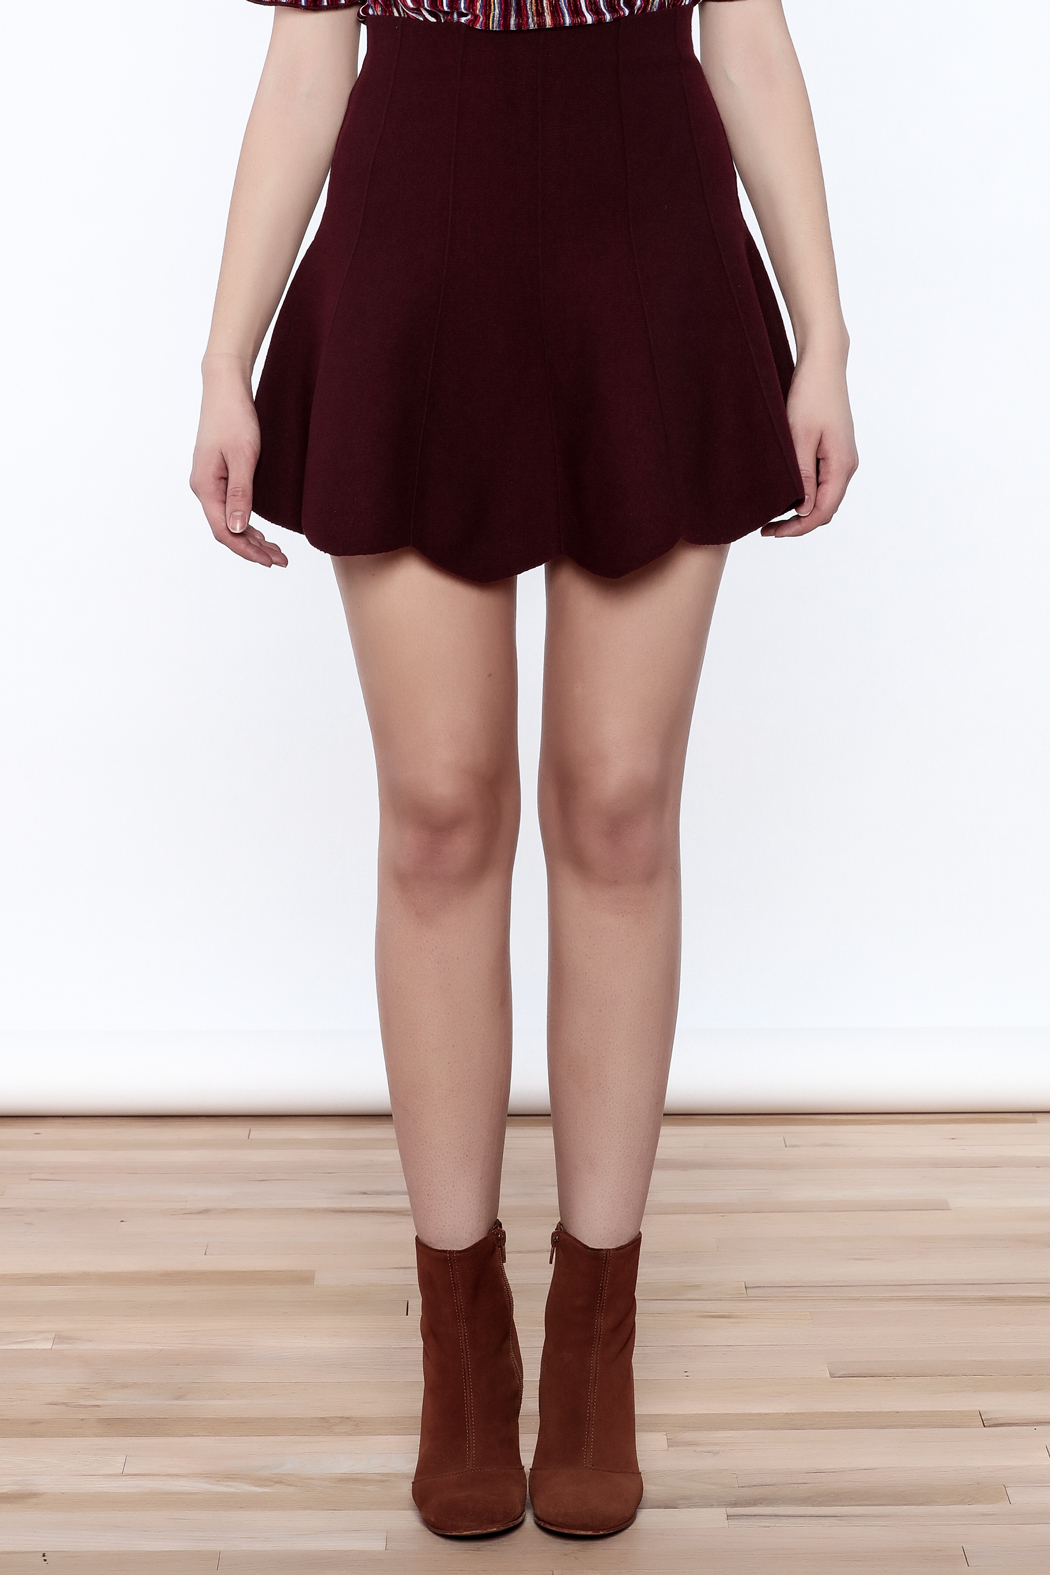 Pinkyotto Scalloped Edge Short Skirt - Side Cropped Image